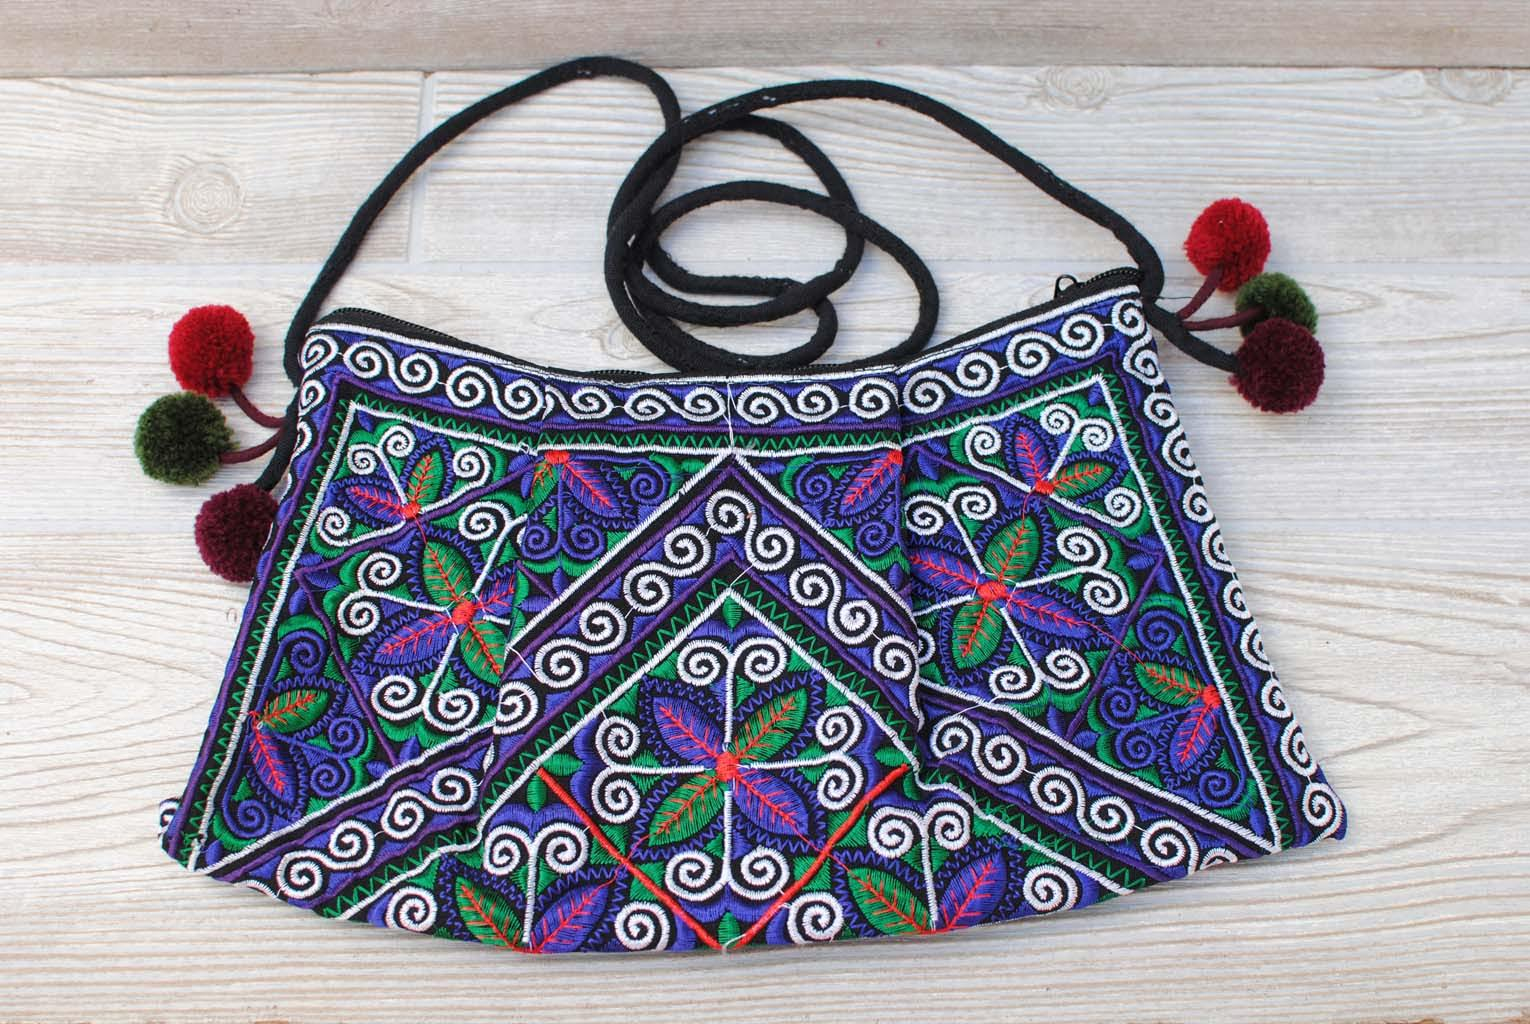 Boho Ethnic Embroidery Bag - Floral Purple Green